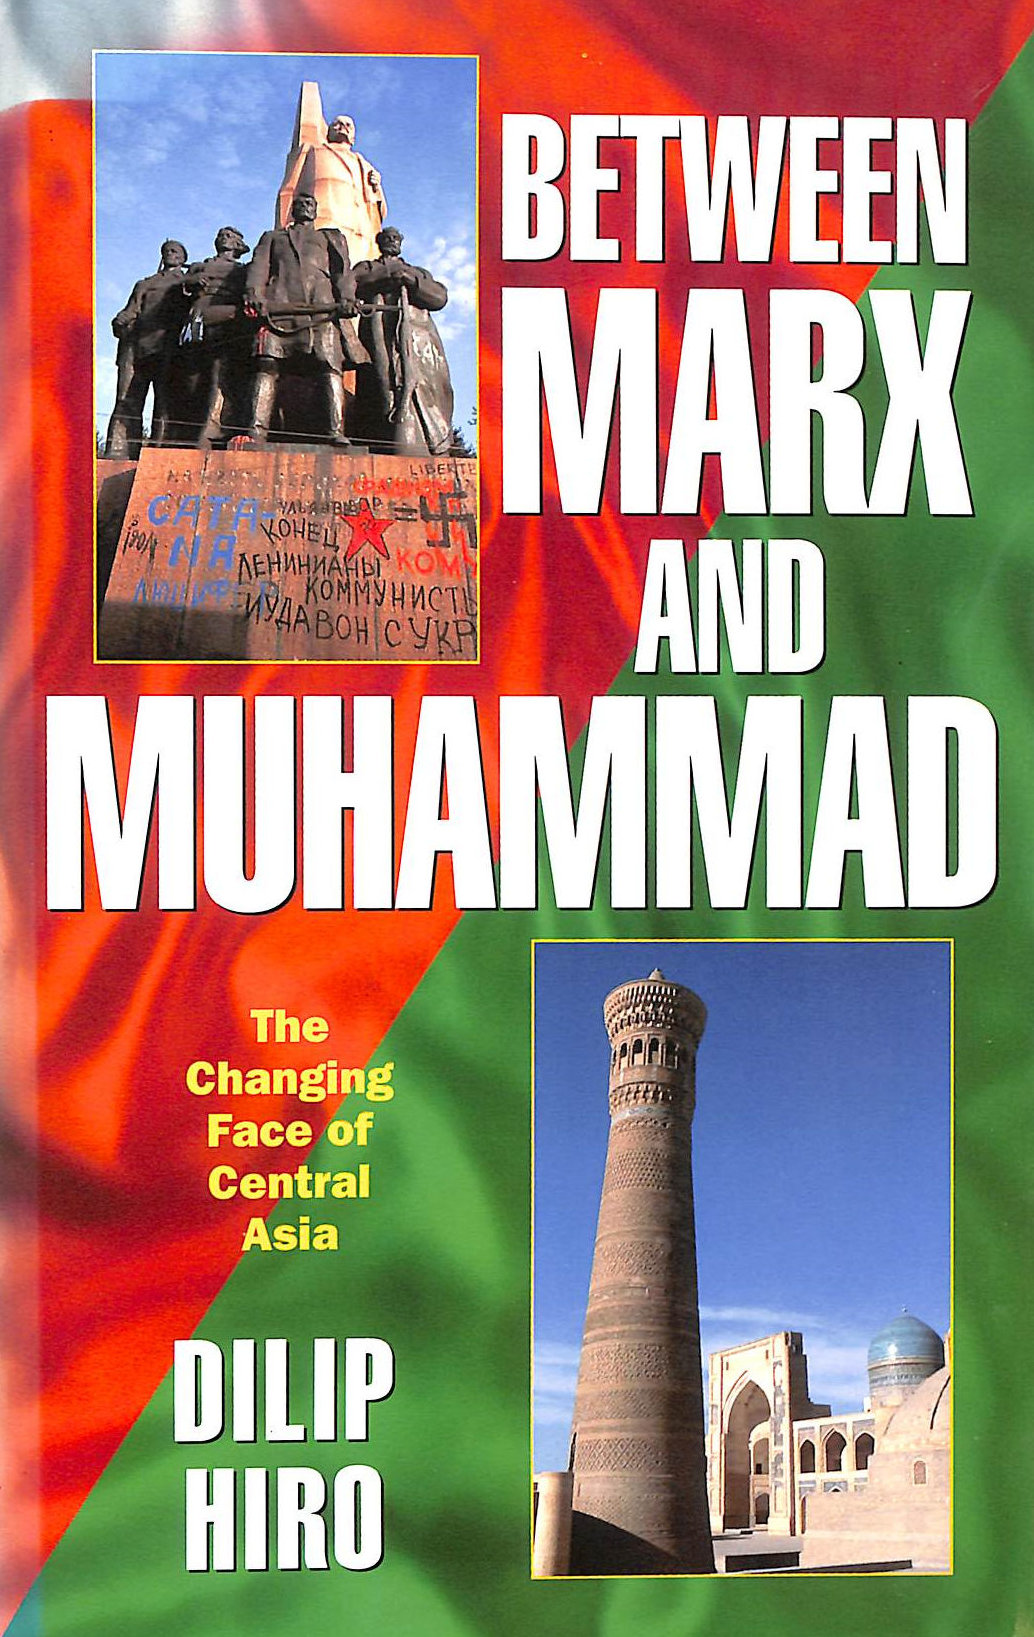 Image for Between Marx and Muhammad: Changing Face of Central Asia